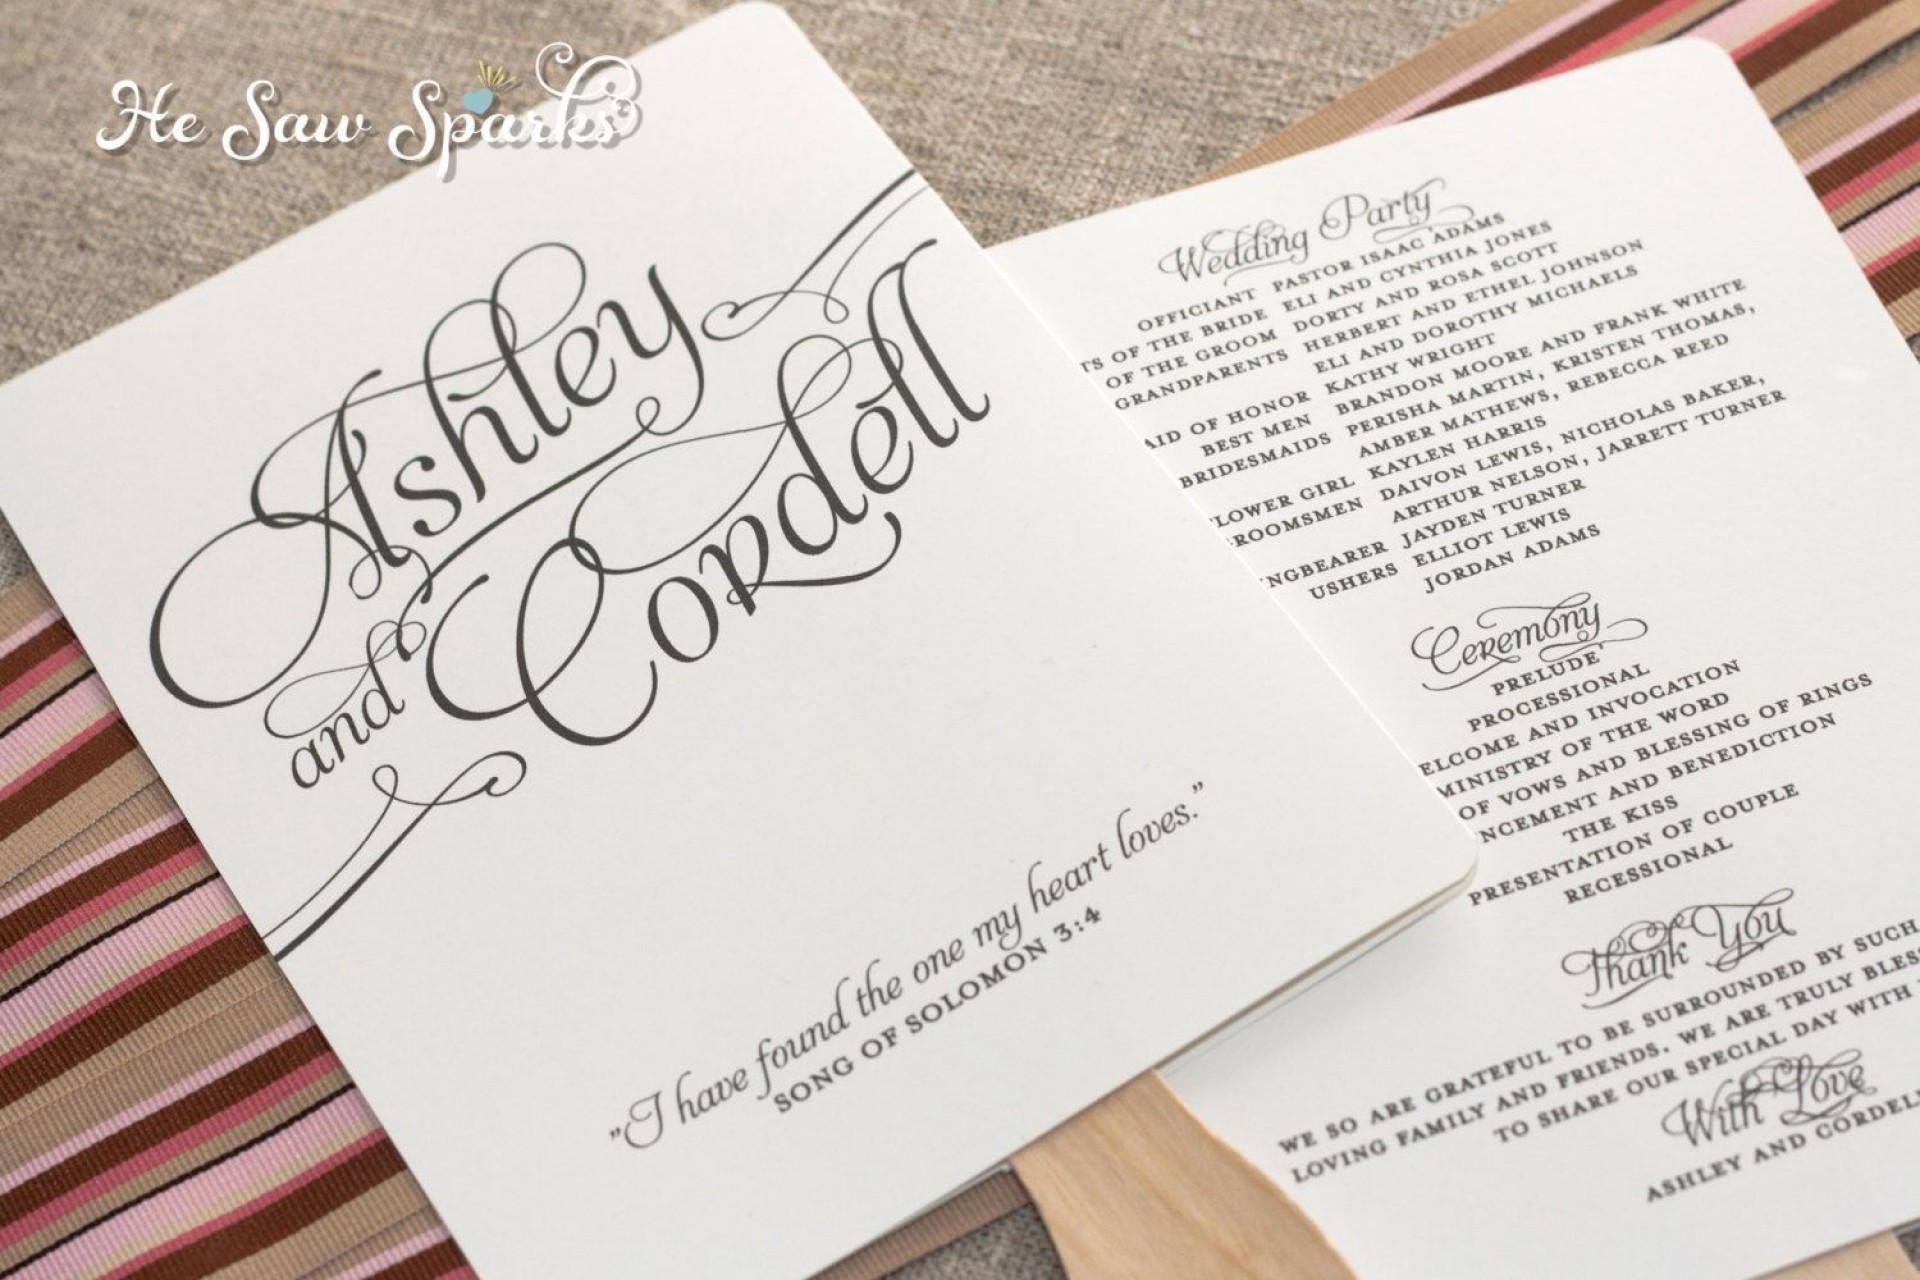 002 Archaicawful Free Printable Wedding Program Paddle Fan Template High Resolution  Templates1920